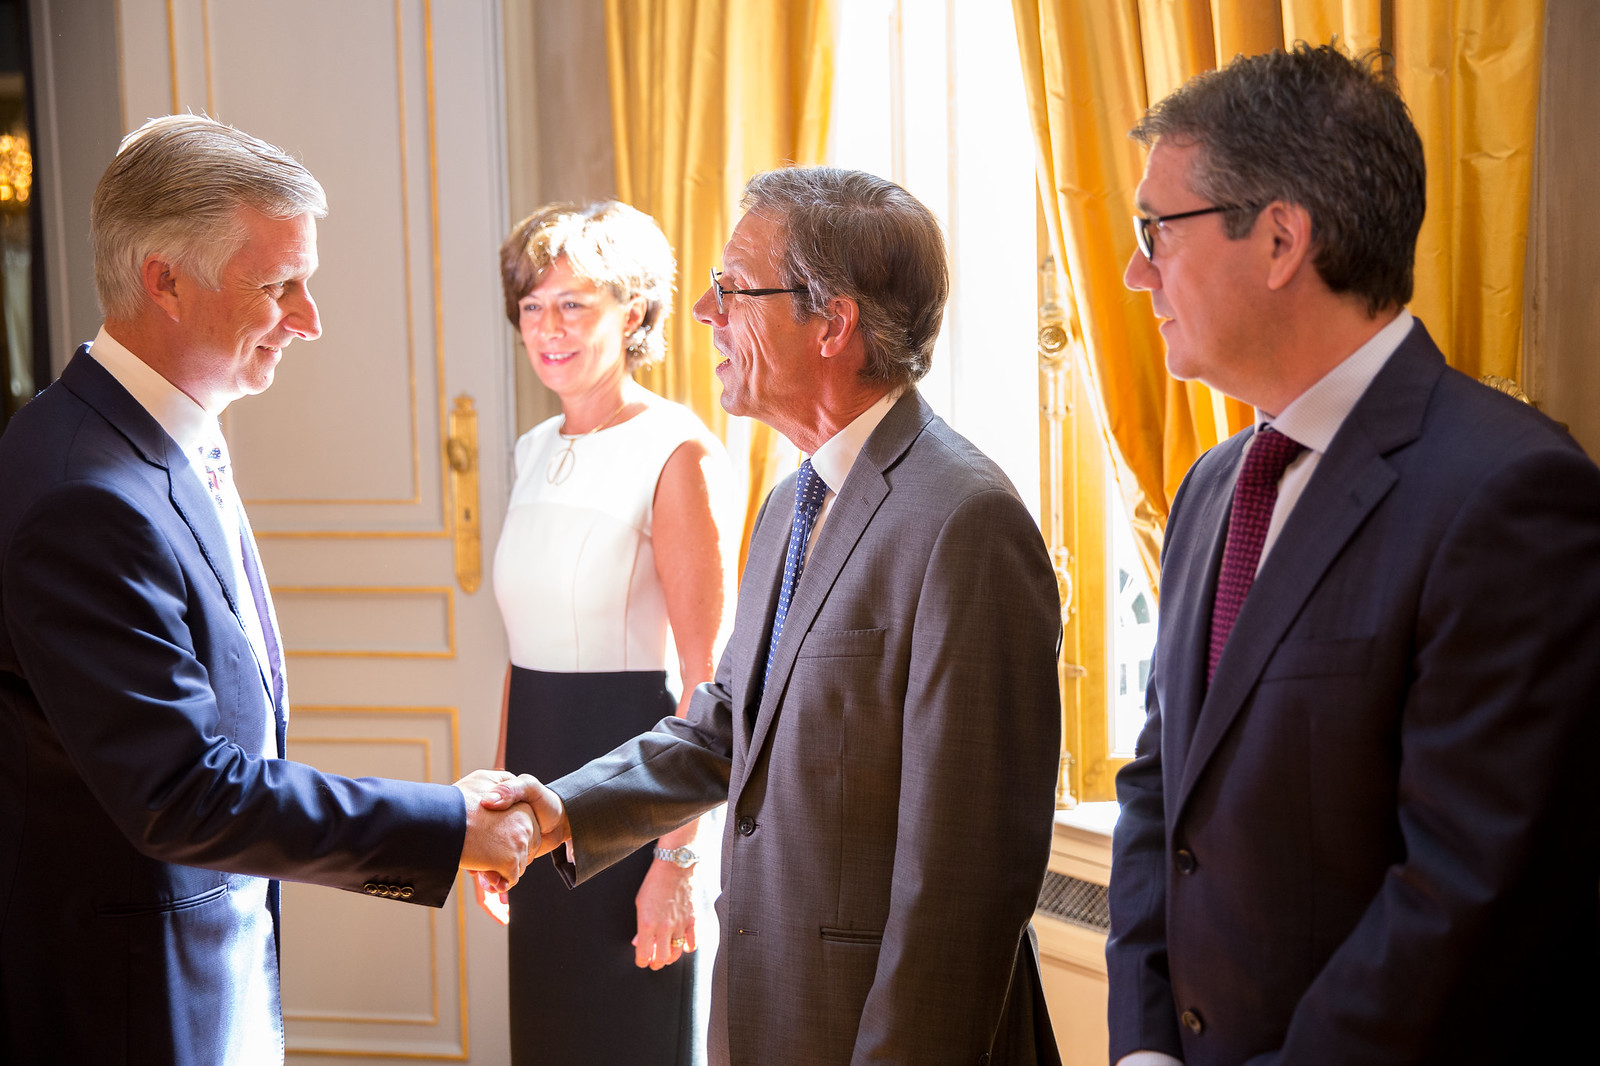 Executive Council meet H.M. King Philippe of the Belgians